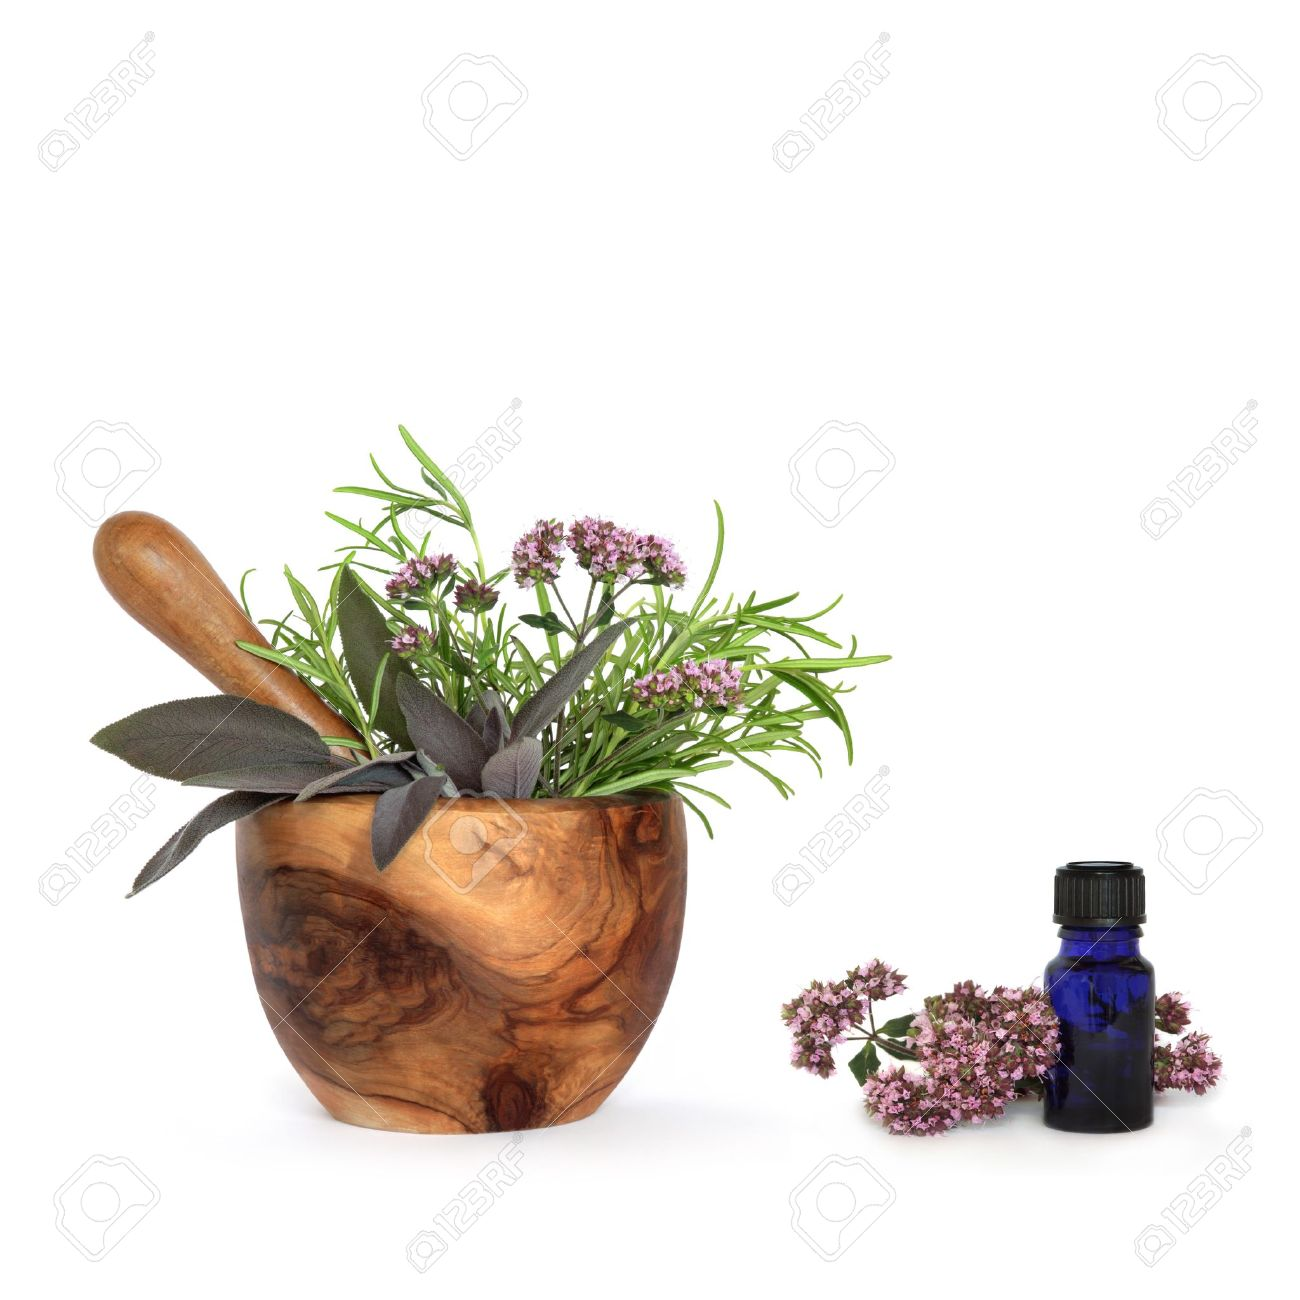 Rosemary, sage and marjoram herb leaf sprigs and flowers with an olive wood mortar with pestle and aromatherapy blue glass essential oil bottle, over white background. Stock Photo - 4408091